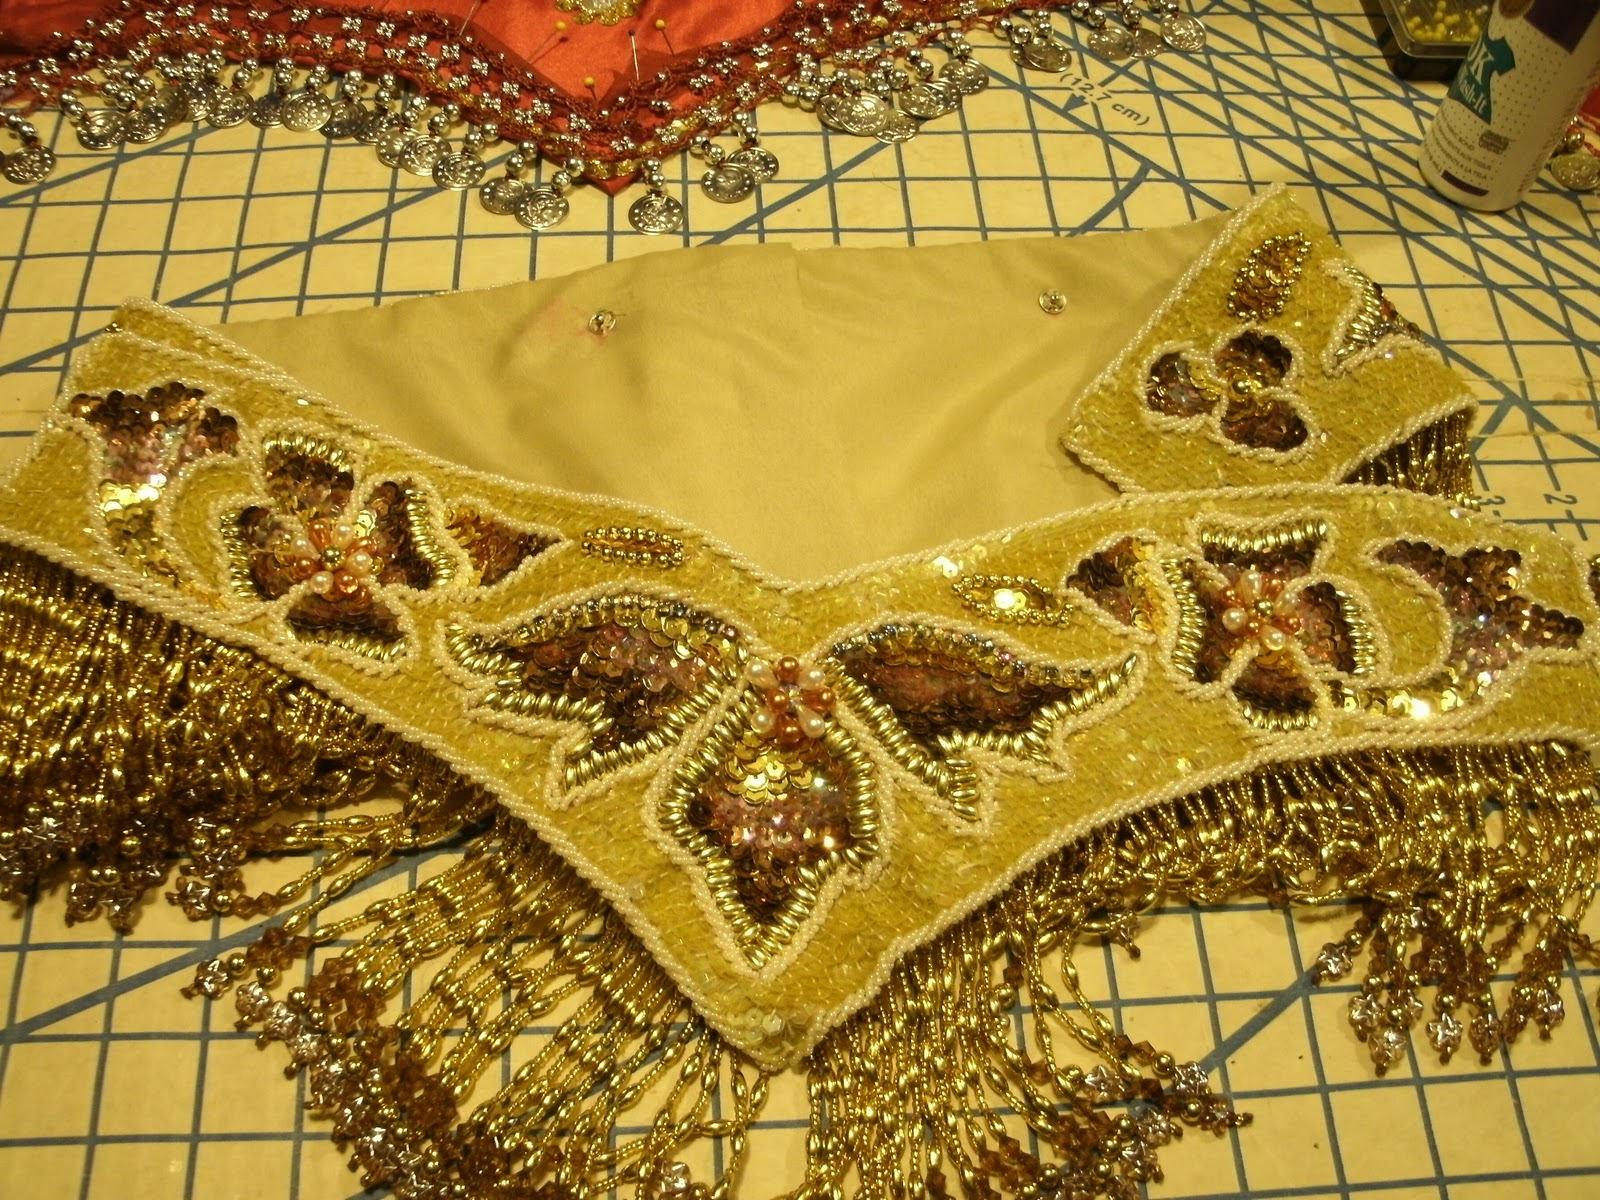 d0f633144f Naima s Bellydance Blog  Coin Wrap to Bedlah Sew Along Task 8  Making a  Belt Base